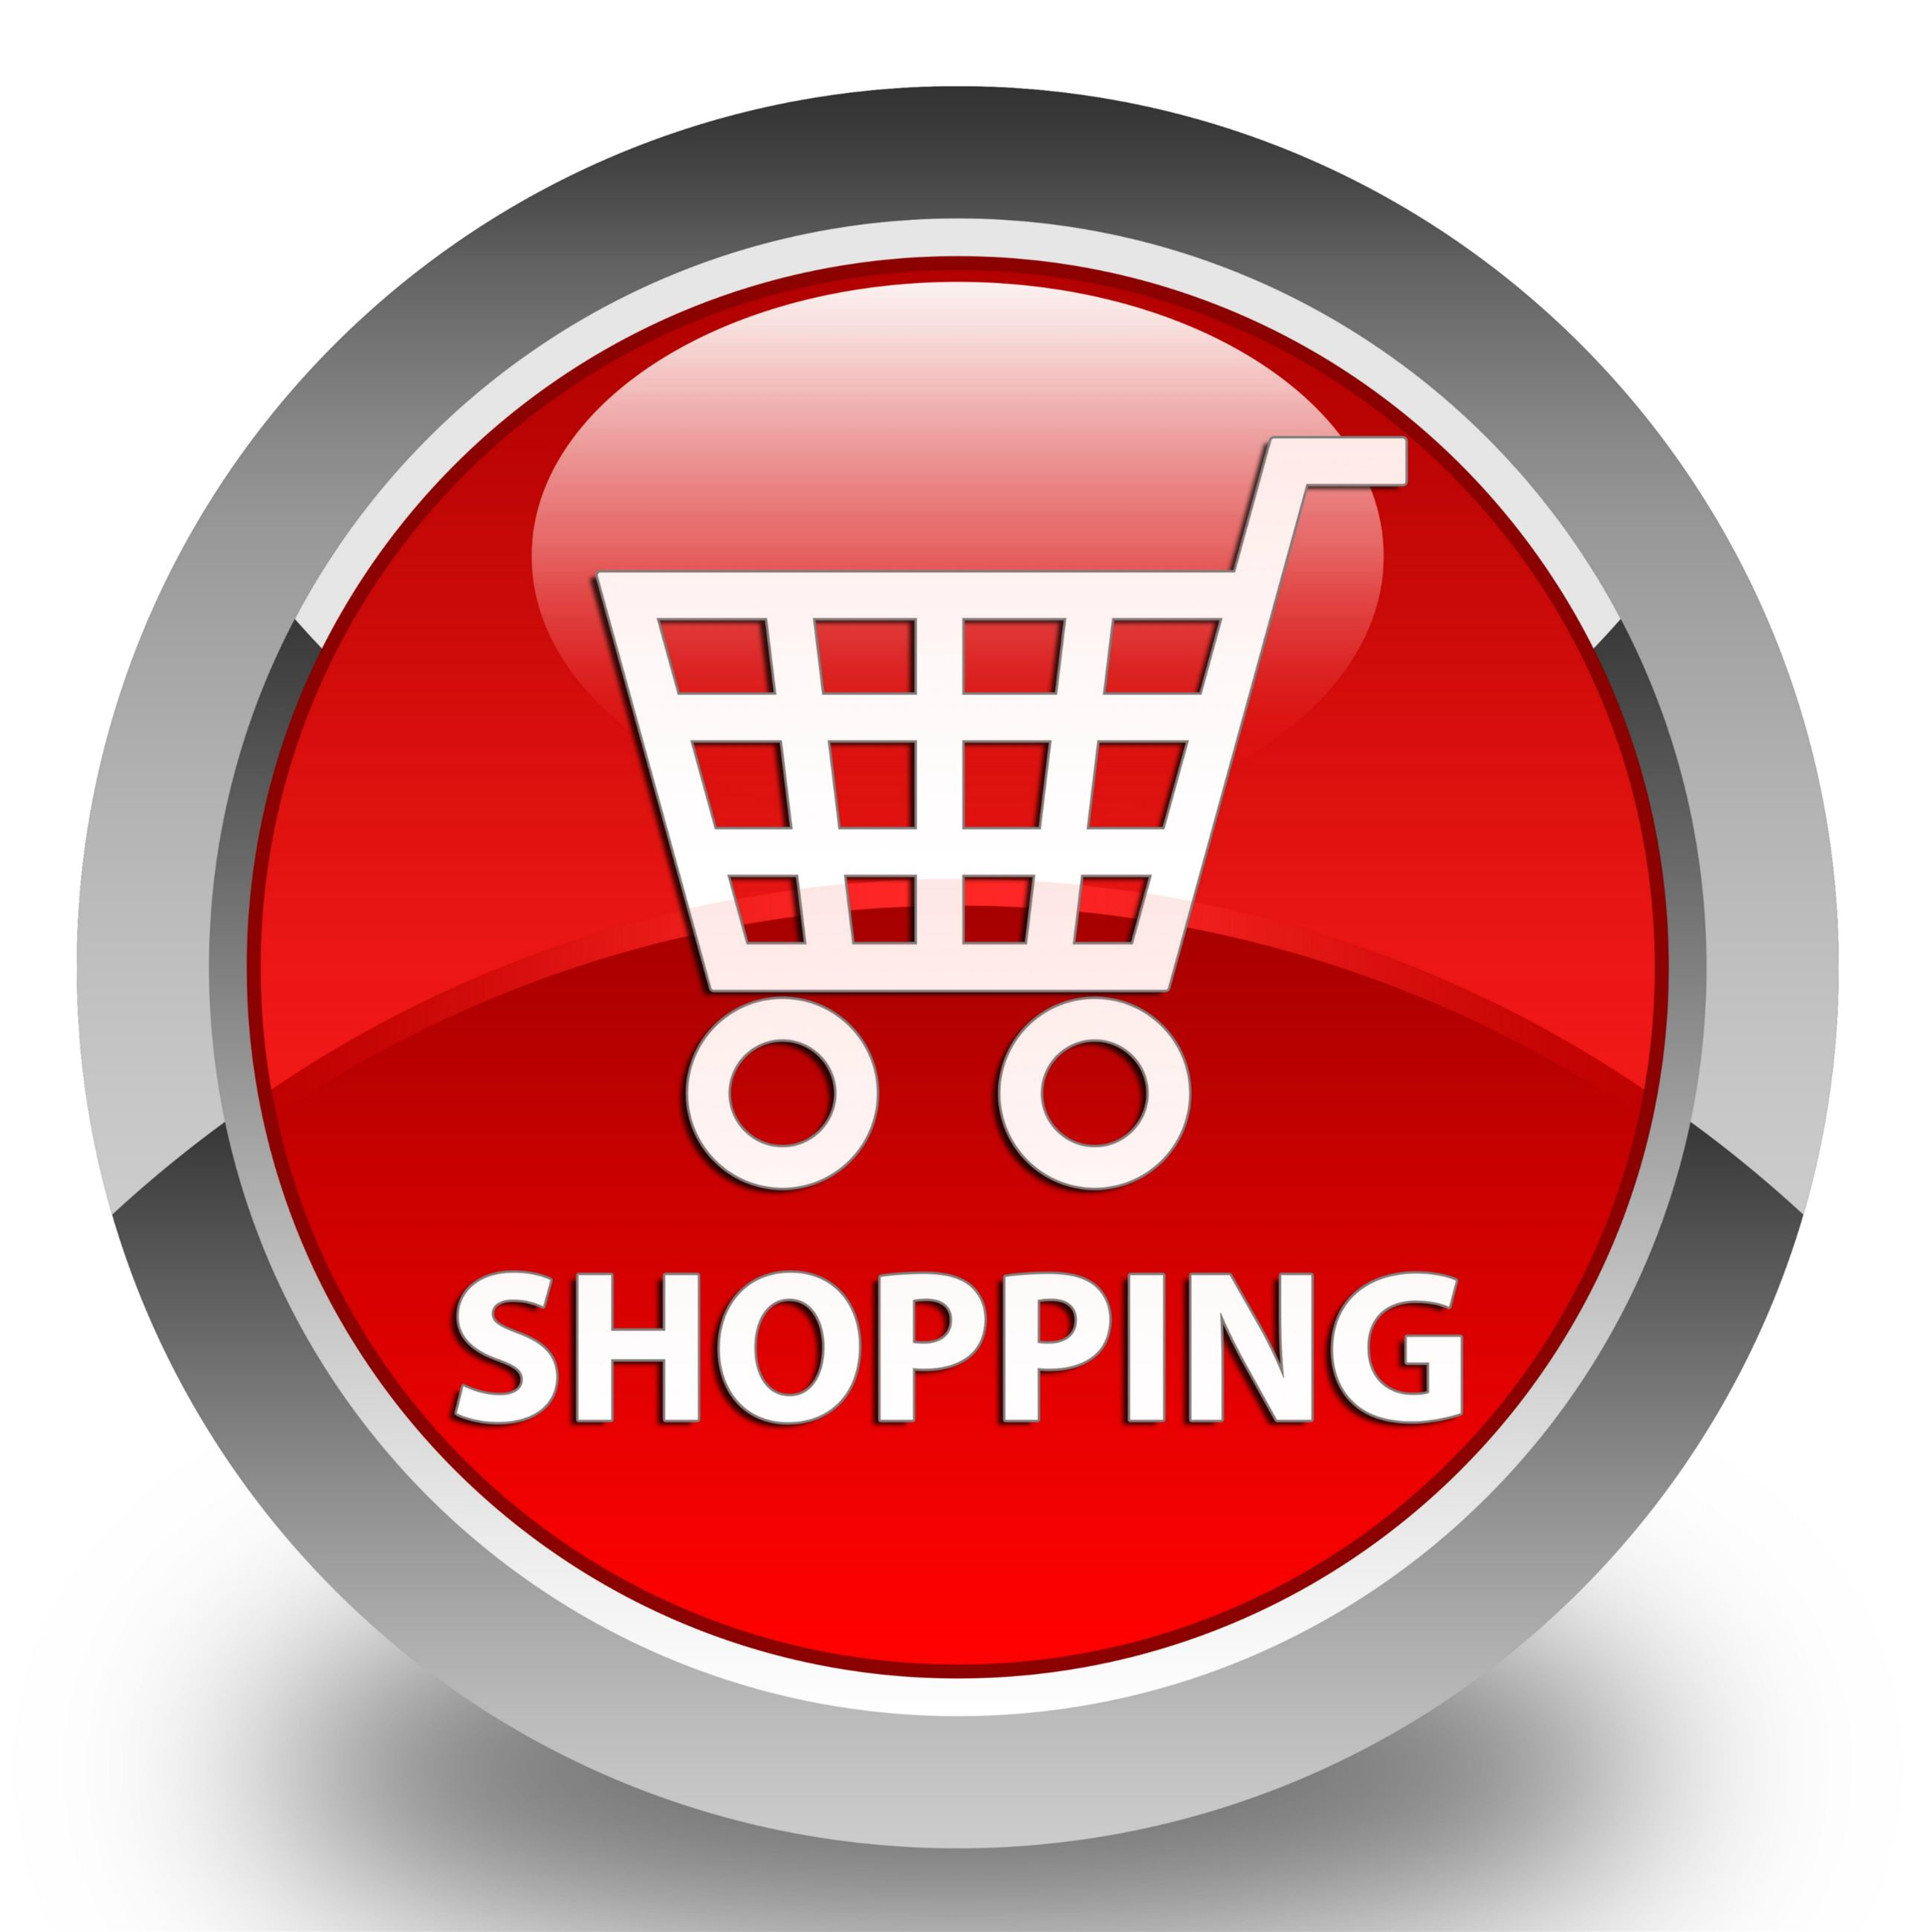 Find shopping opportunities in Valparaiso & Porter County